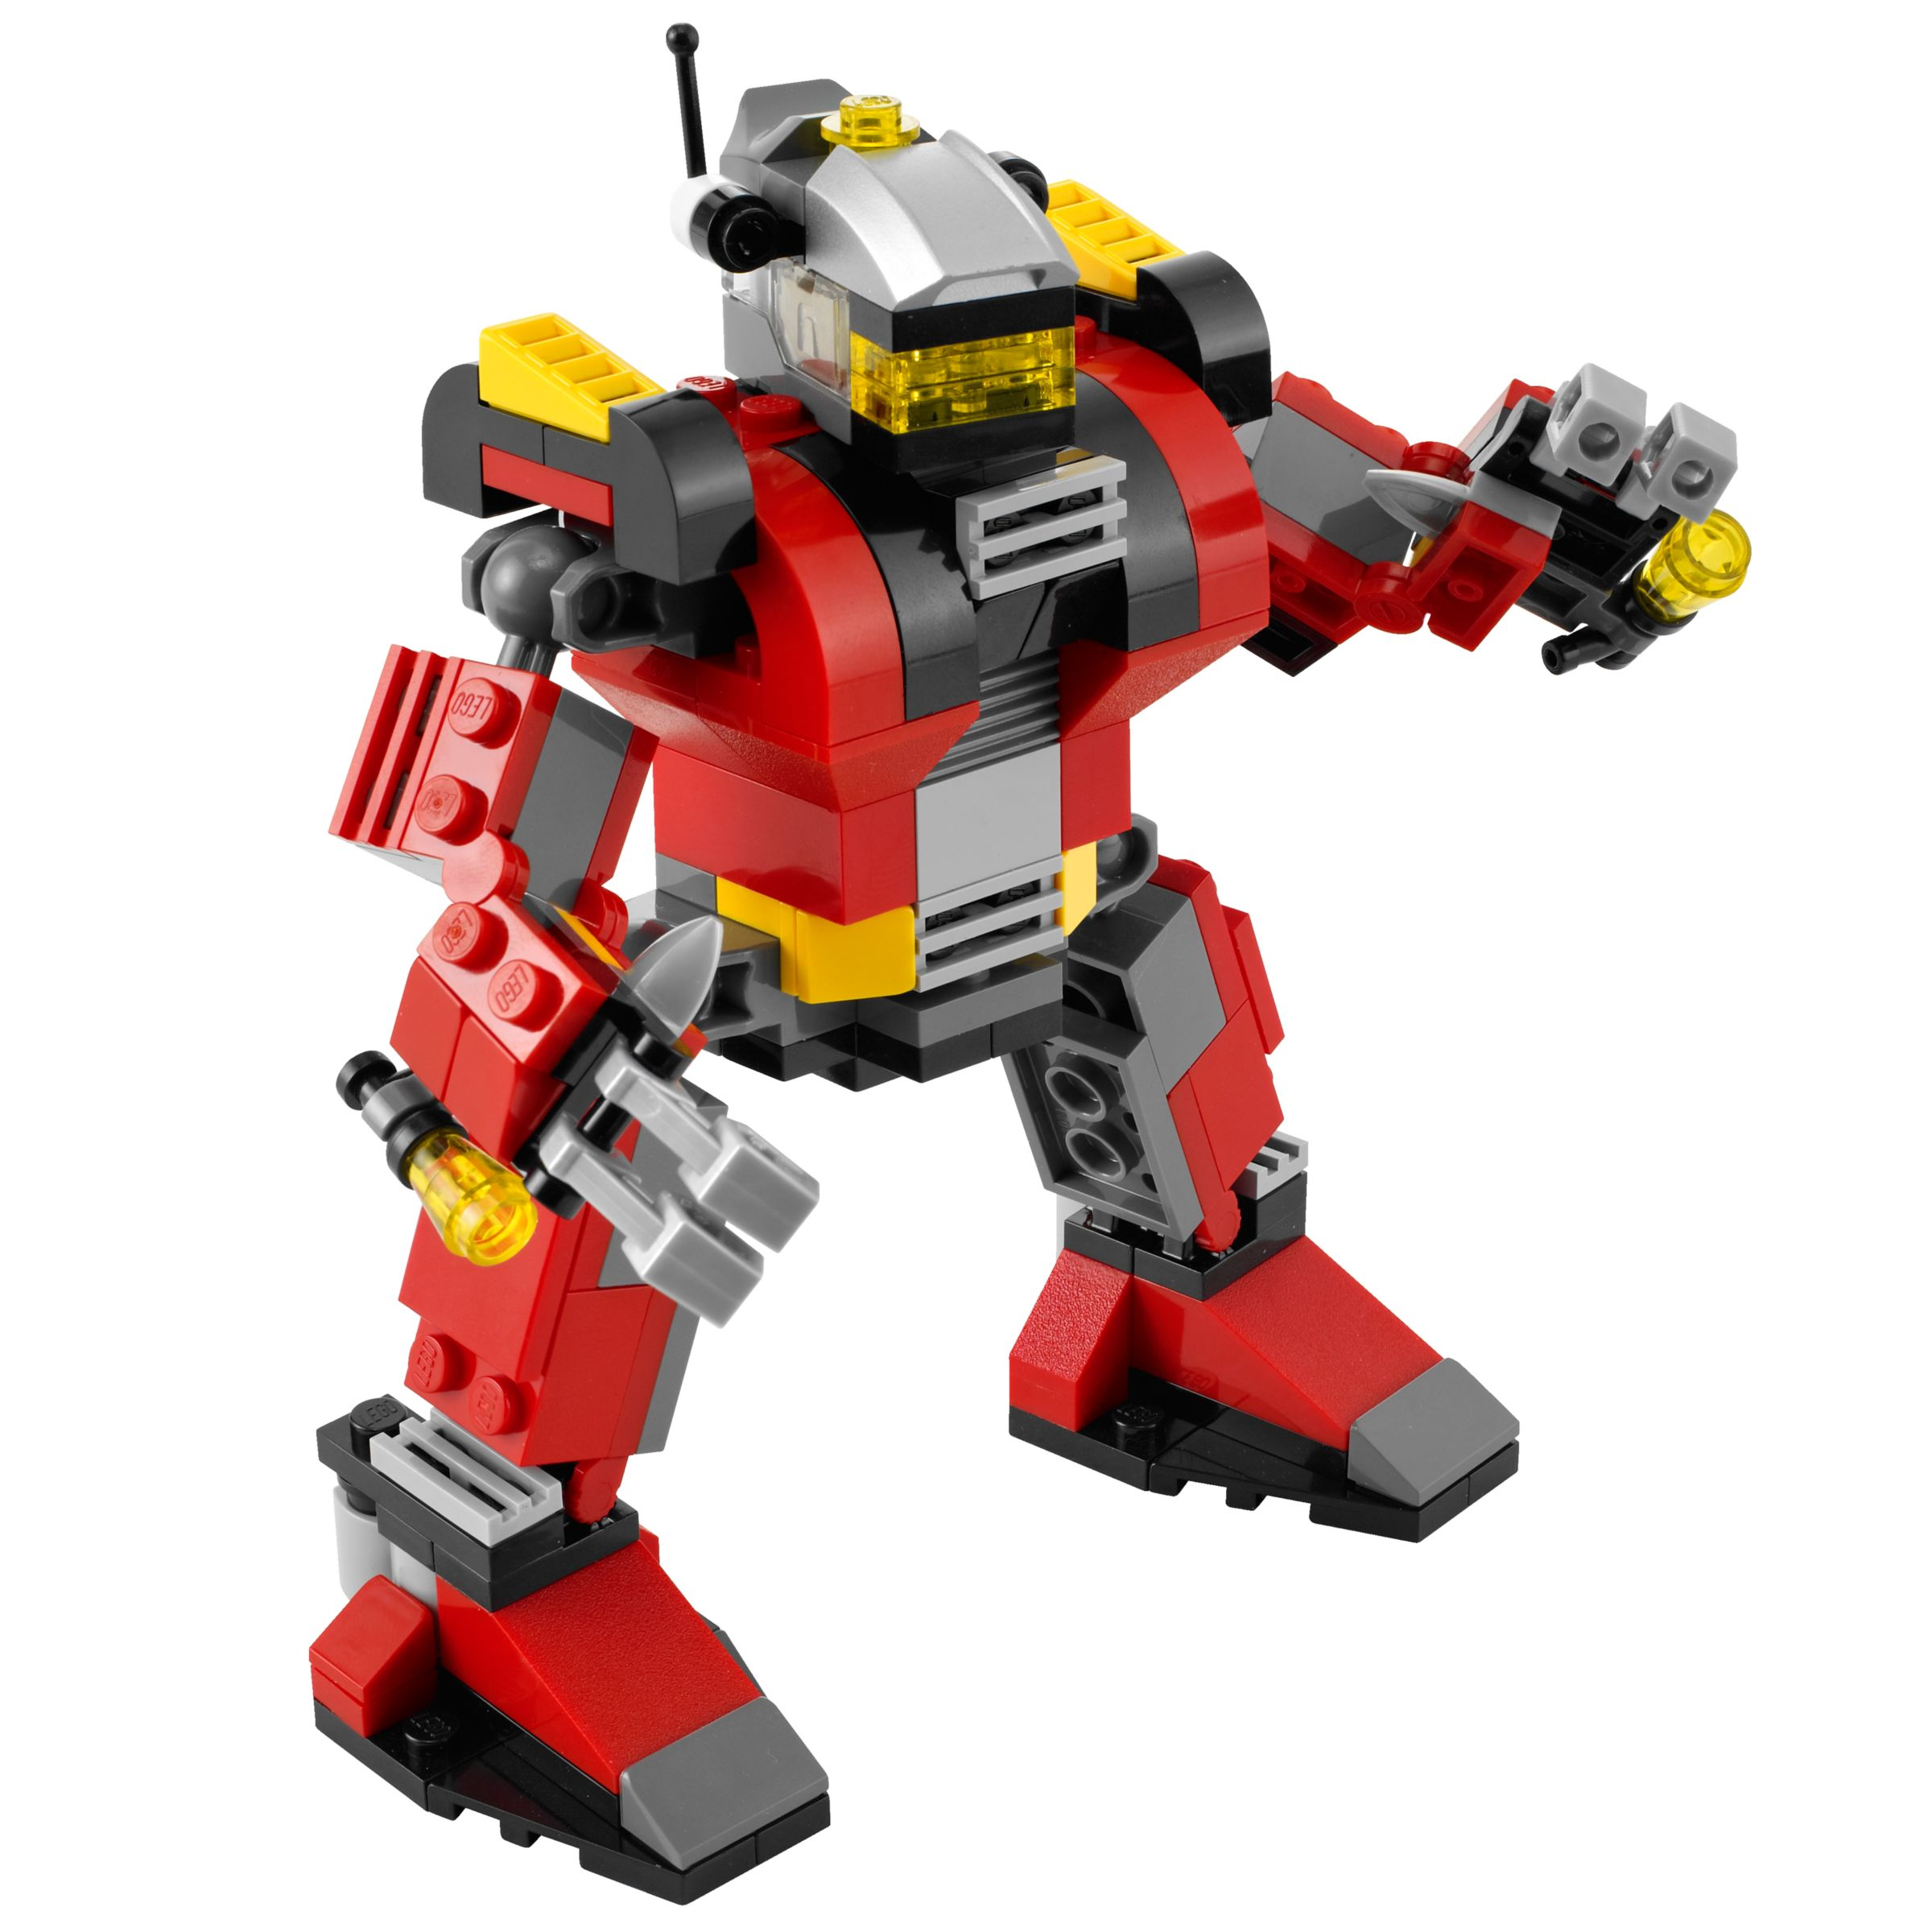 Lego Creator 3 in 1 Rescue Robot Building Kit